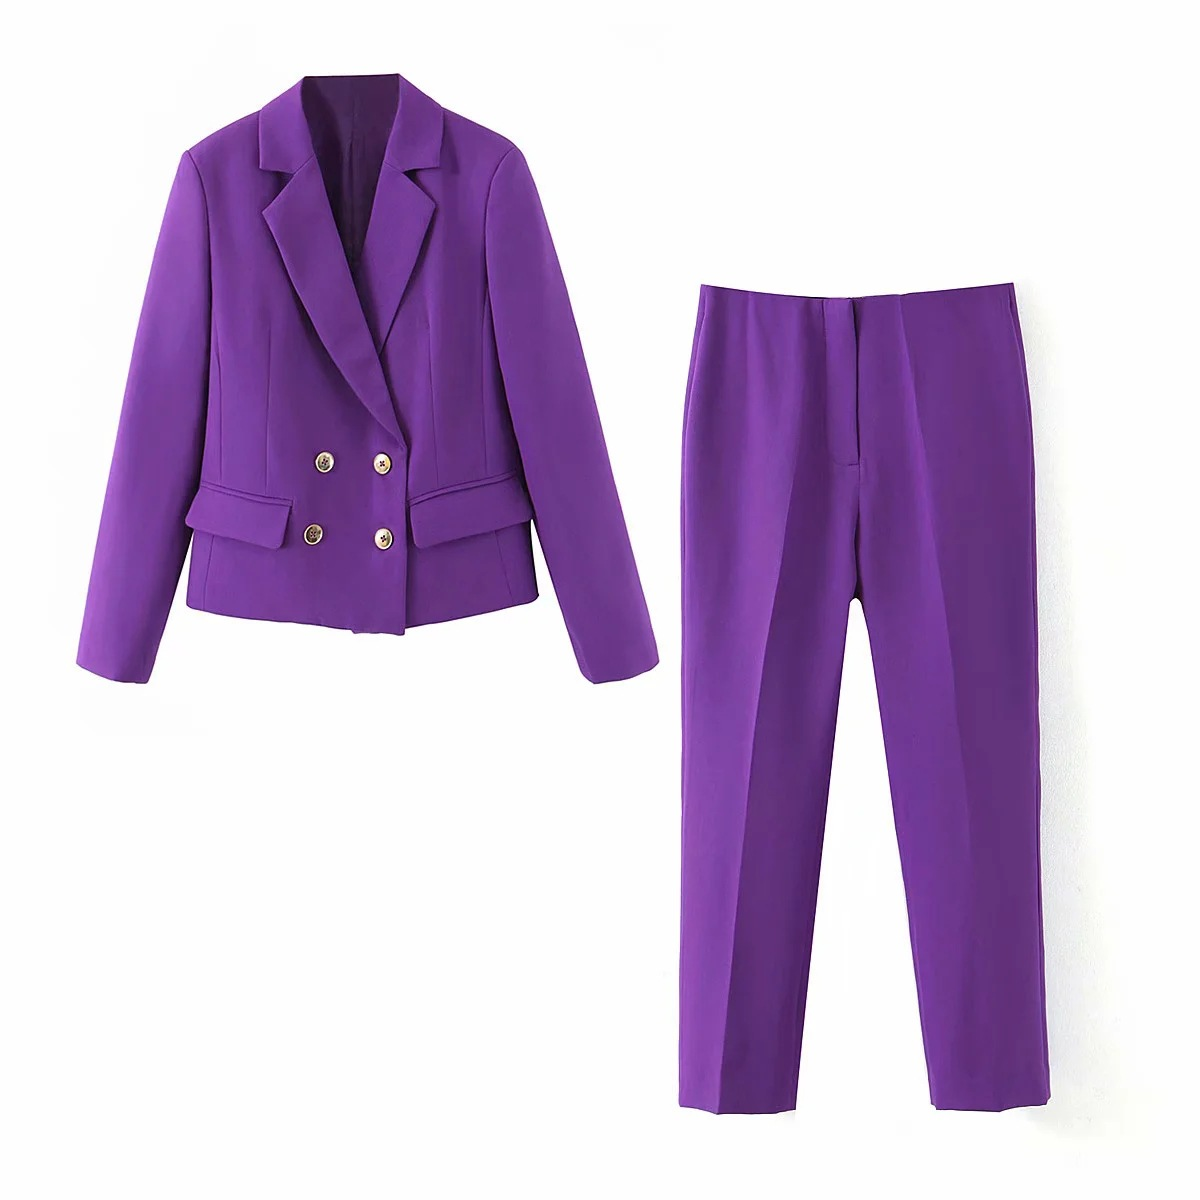 2020 Spring And Autumn New Casual Women's Suit Pants Two-piece Fashion Purple Short Ladies Blazer Elegant Trousers